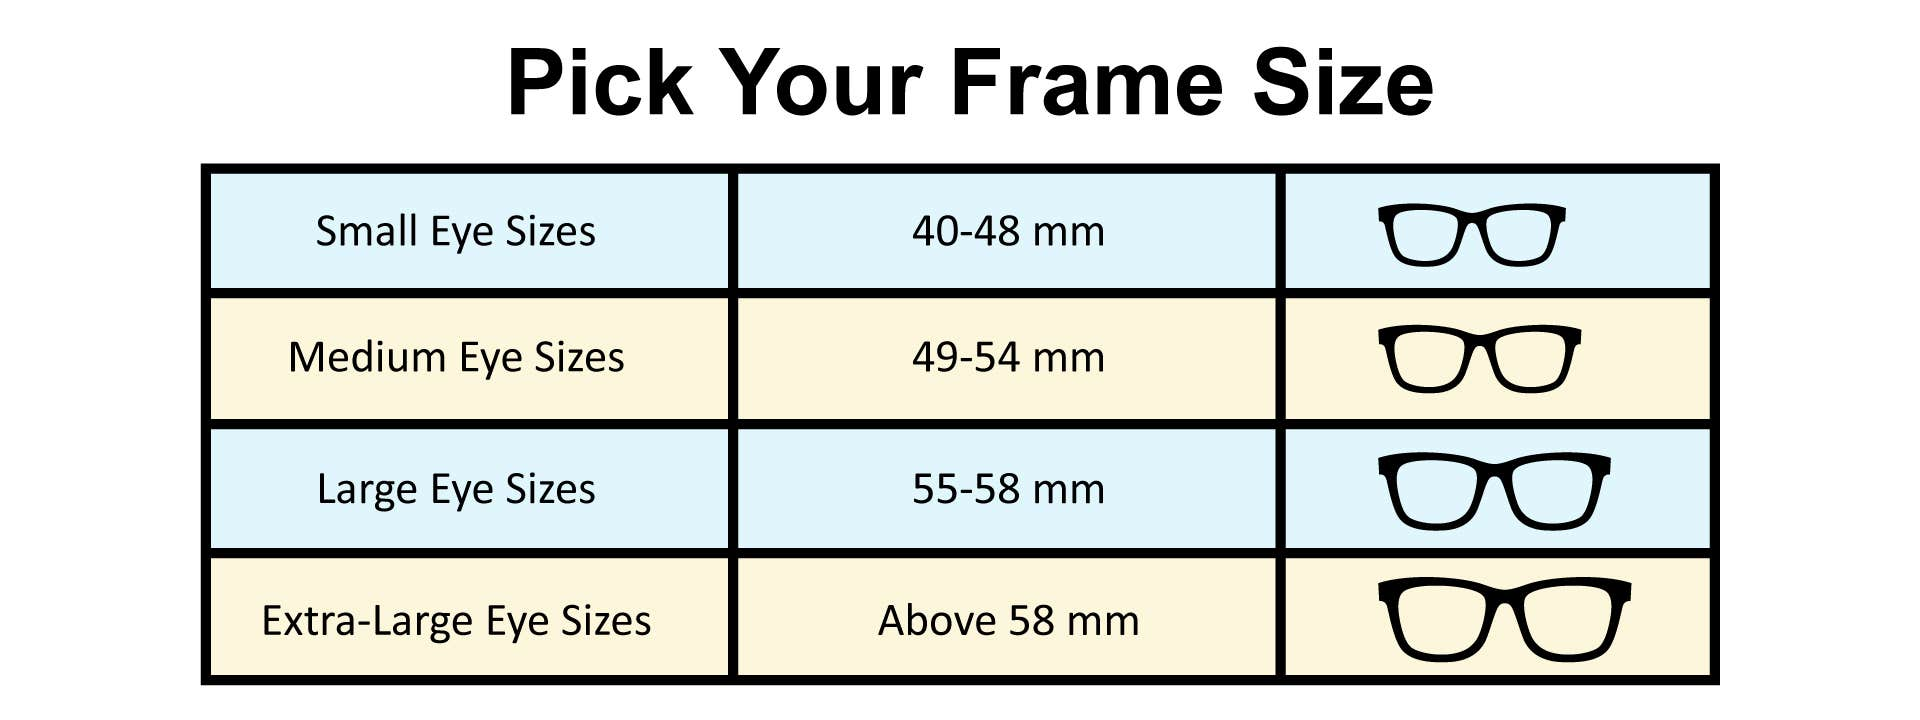 Choose The Size of The Frame Wisely: